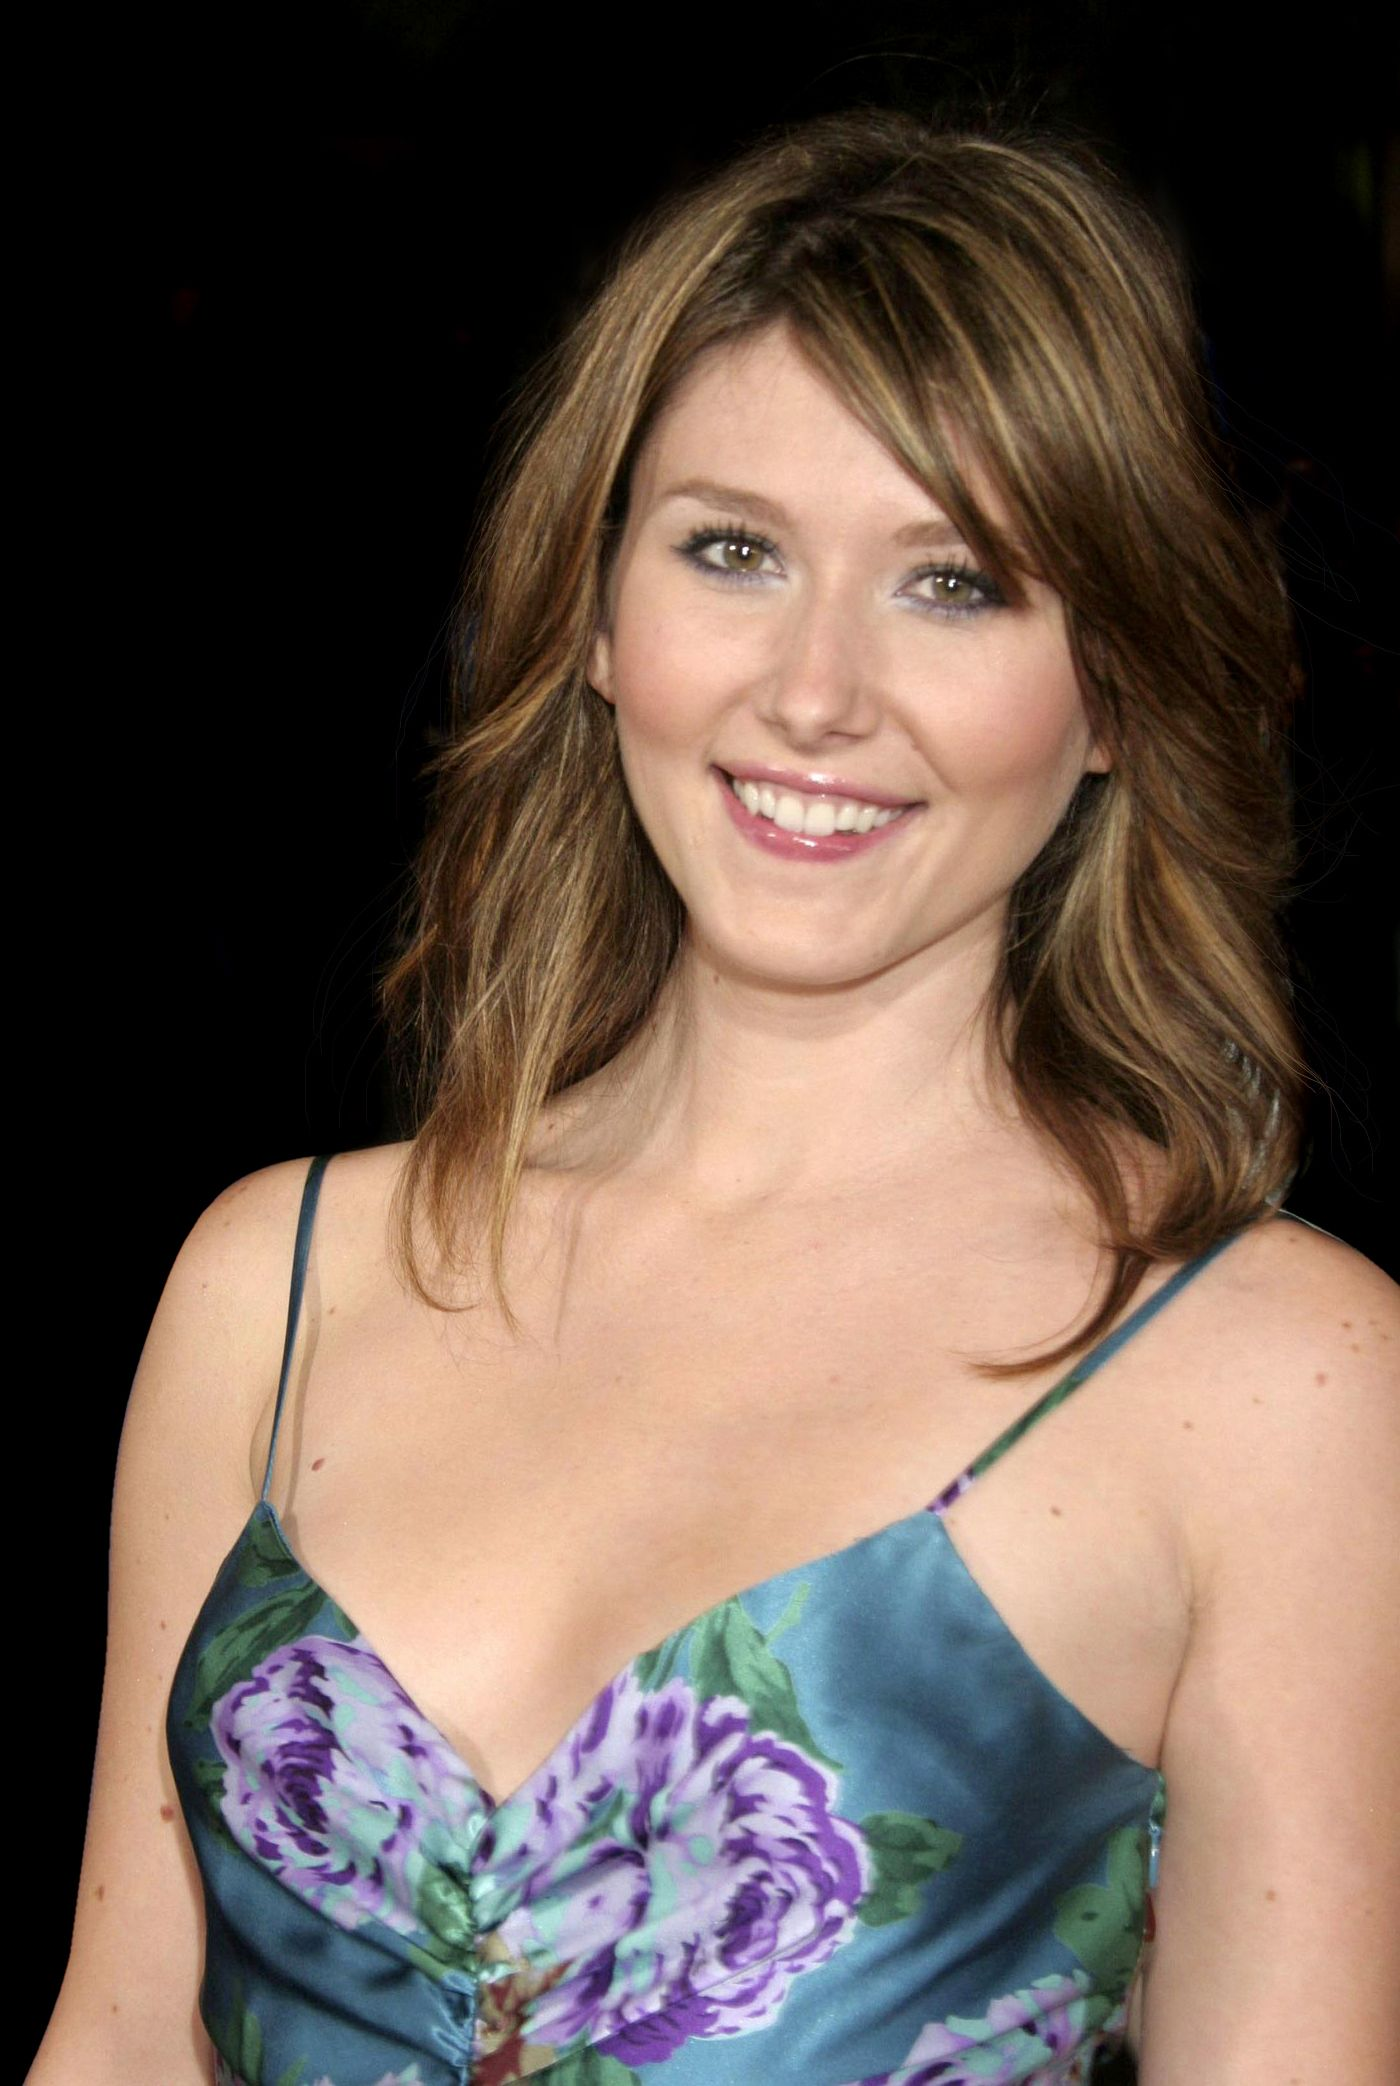 jewel staite twitterjewel staite instagram, jewel staite 2017, jewel staite 2013, jewel staite comic con, jewel staite firefly, jewel staite 2016, jewel staite wiki, jewel staite looks like, jewel staite twitter, jewel staite supernatural, jewel staite westworld, jewel staite reddit, jewel staite, jewel staite imdb, jewel staite 2015, jewel staite stargate atlantis, jewel staite 2014, jewel staite x files, jewel staite legends of tomorrow